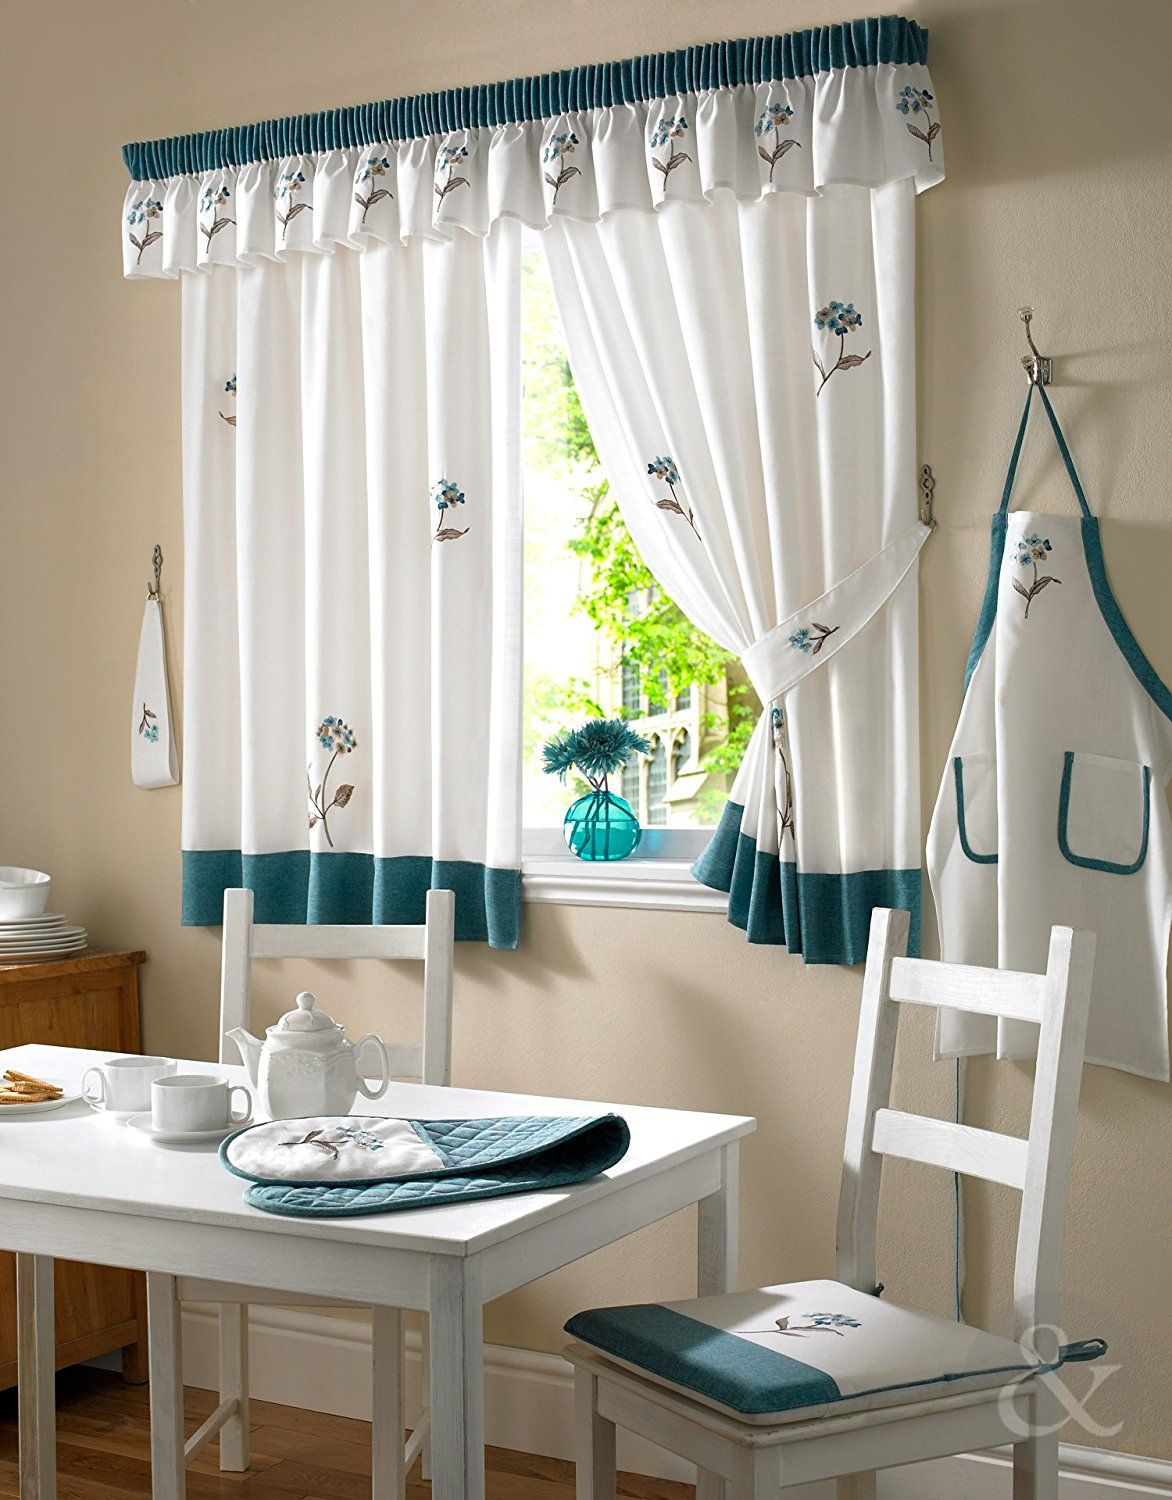 TEAL CREAM Curtain Floral Ready Made Embroidered Kitchen Net